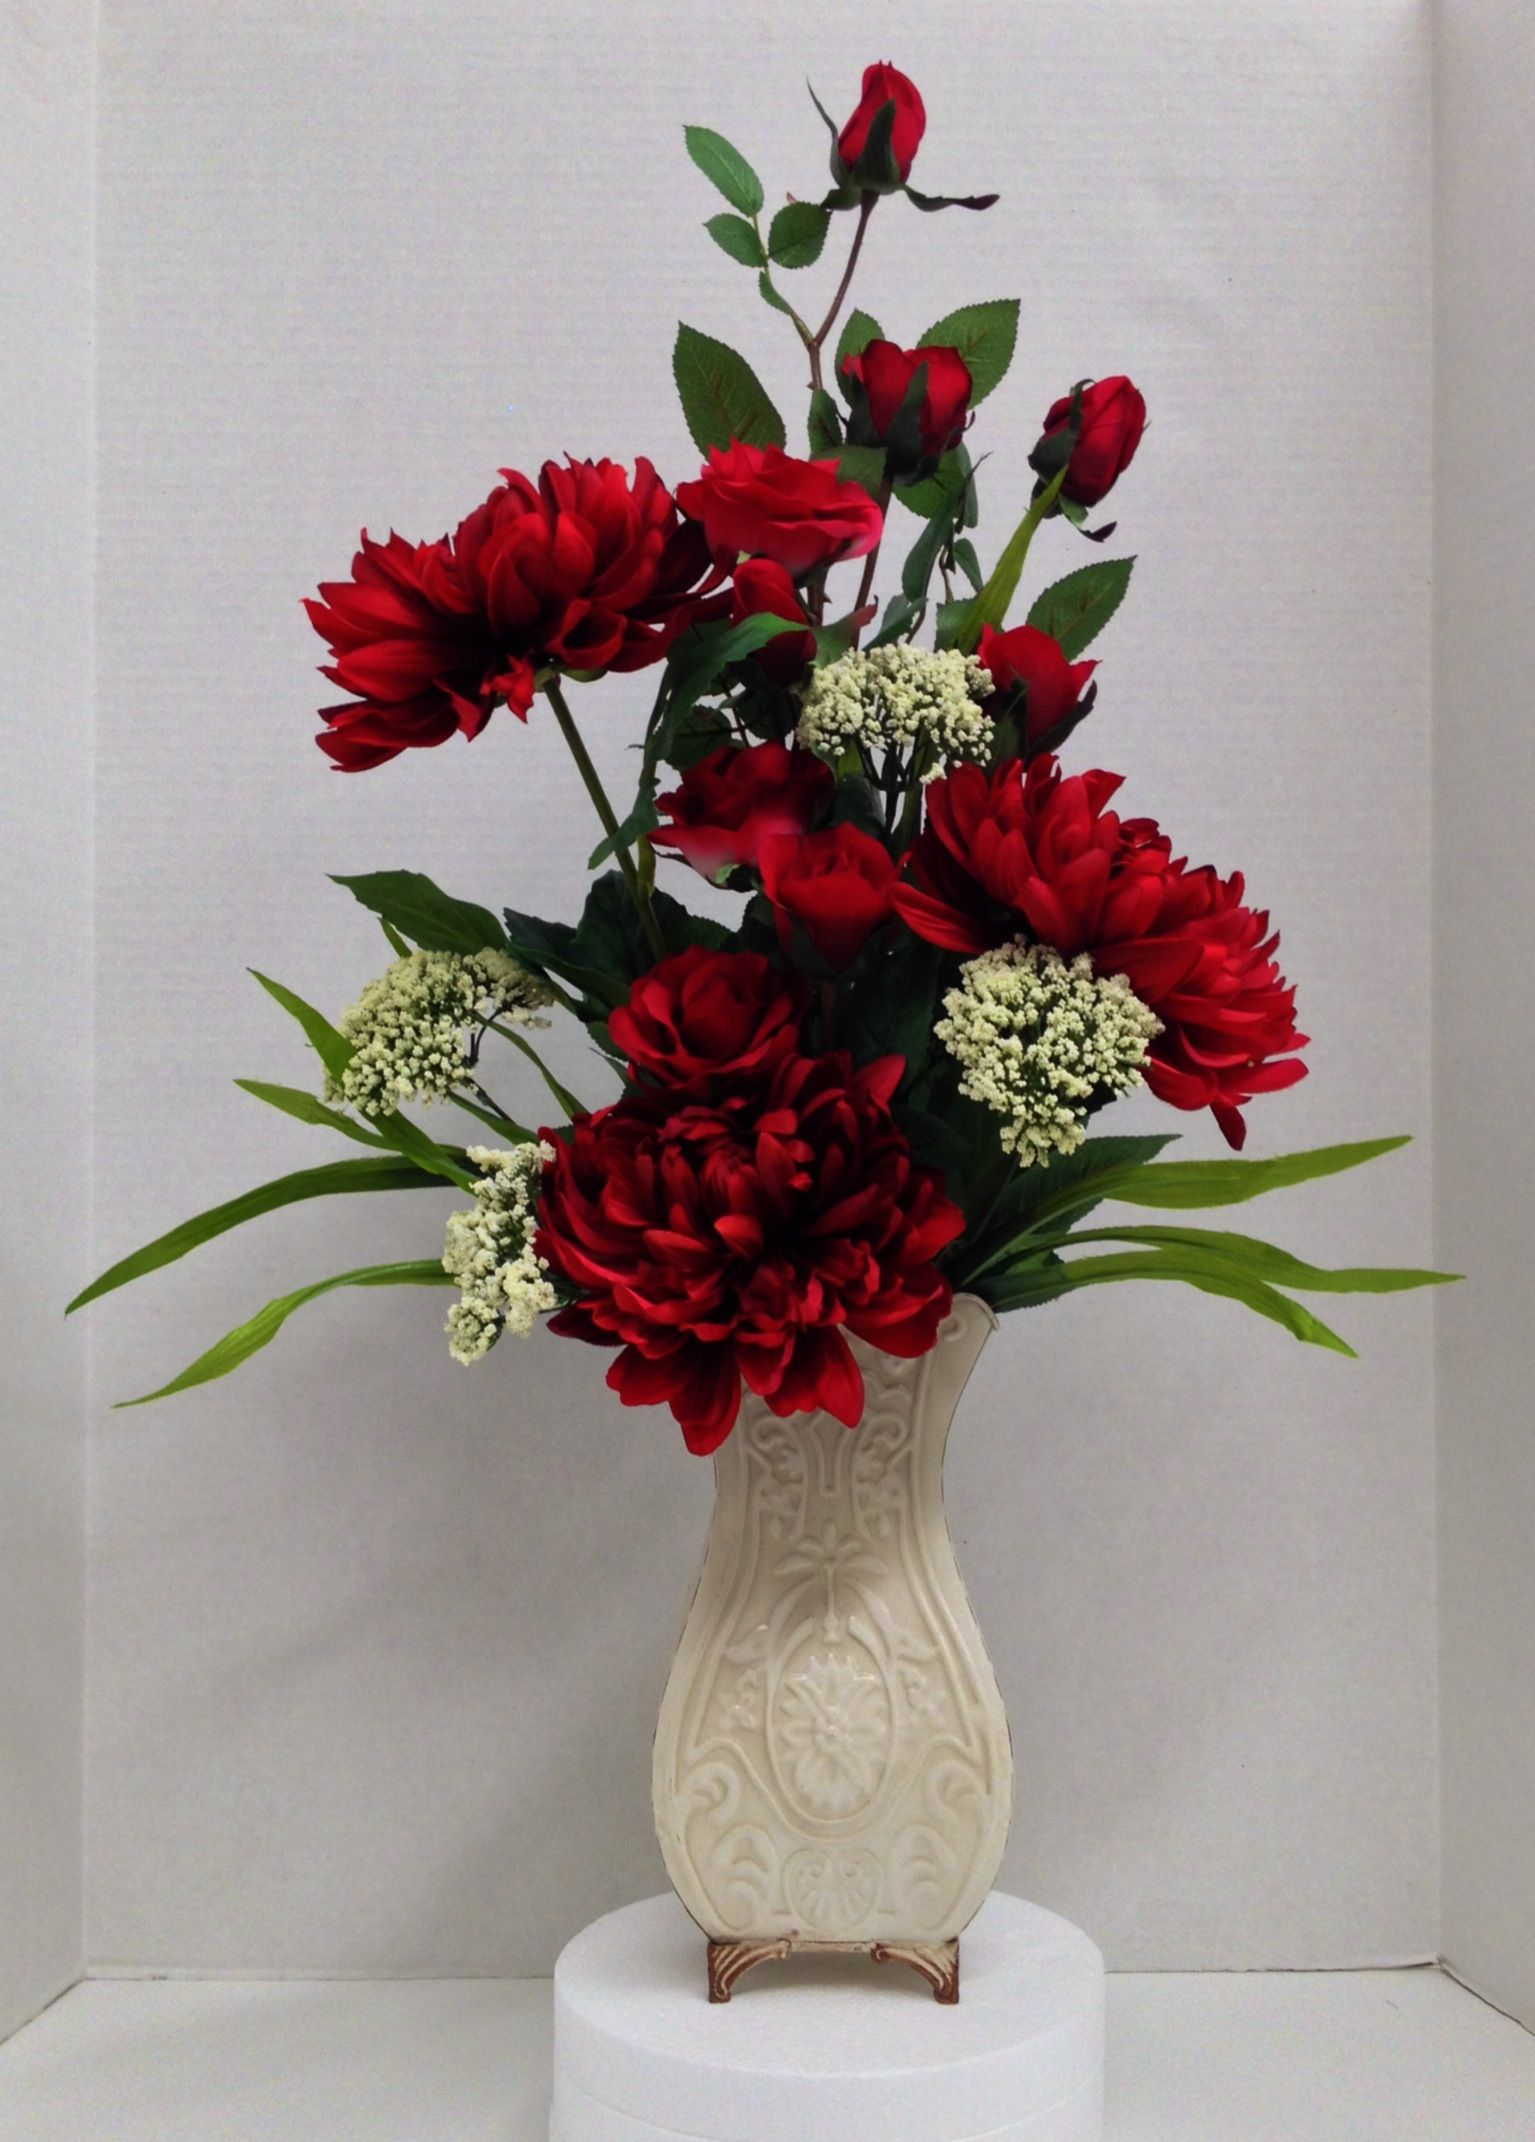 Flower Arrangement Spring 2014 Season Faux Red Roses & Dahlias